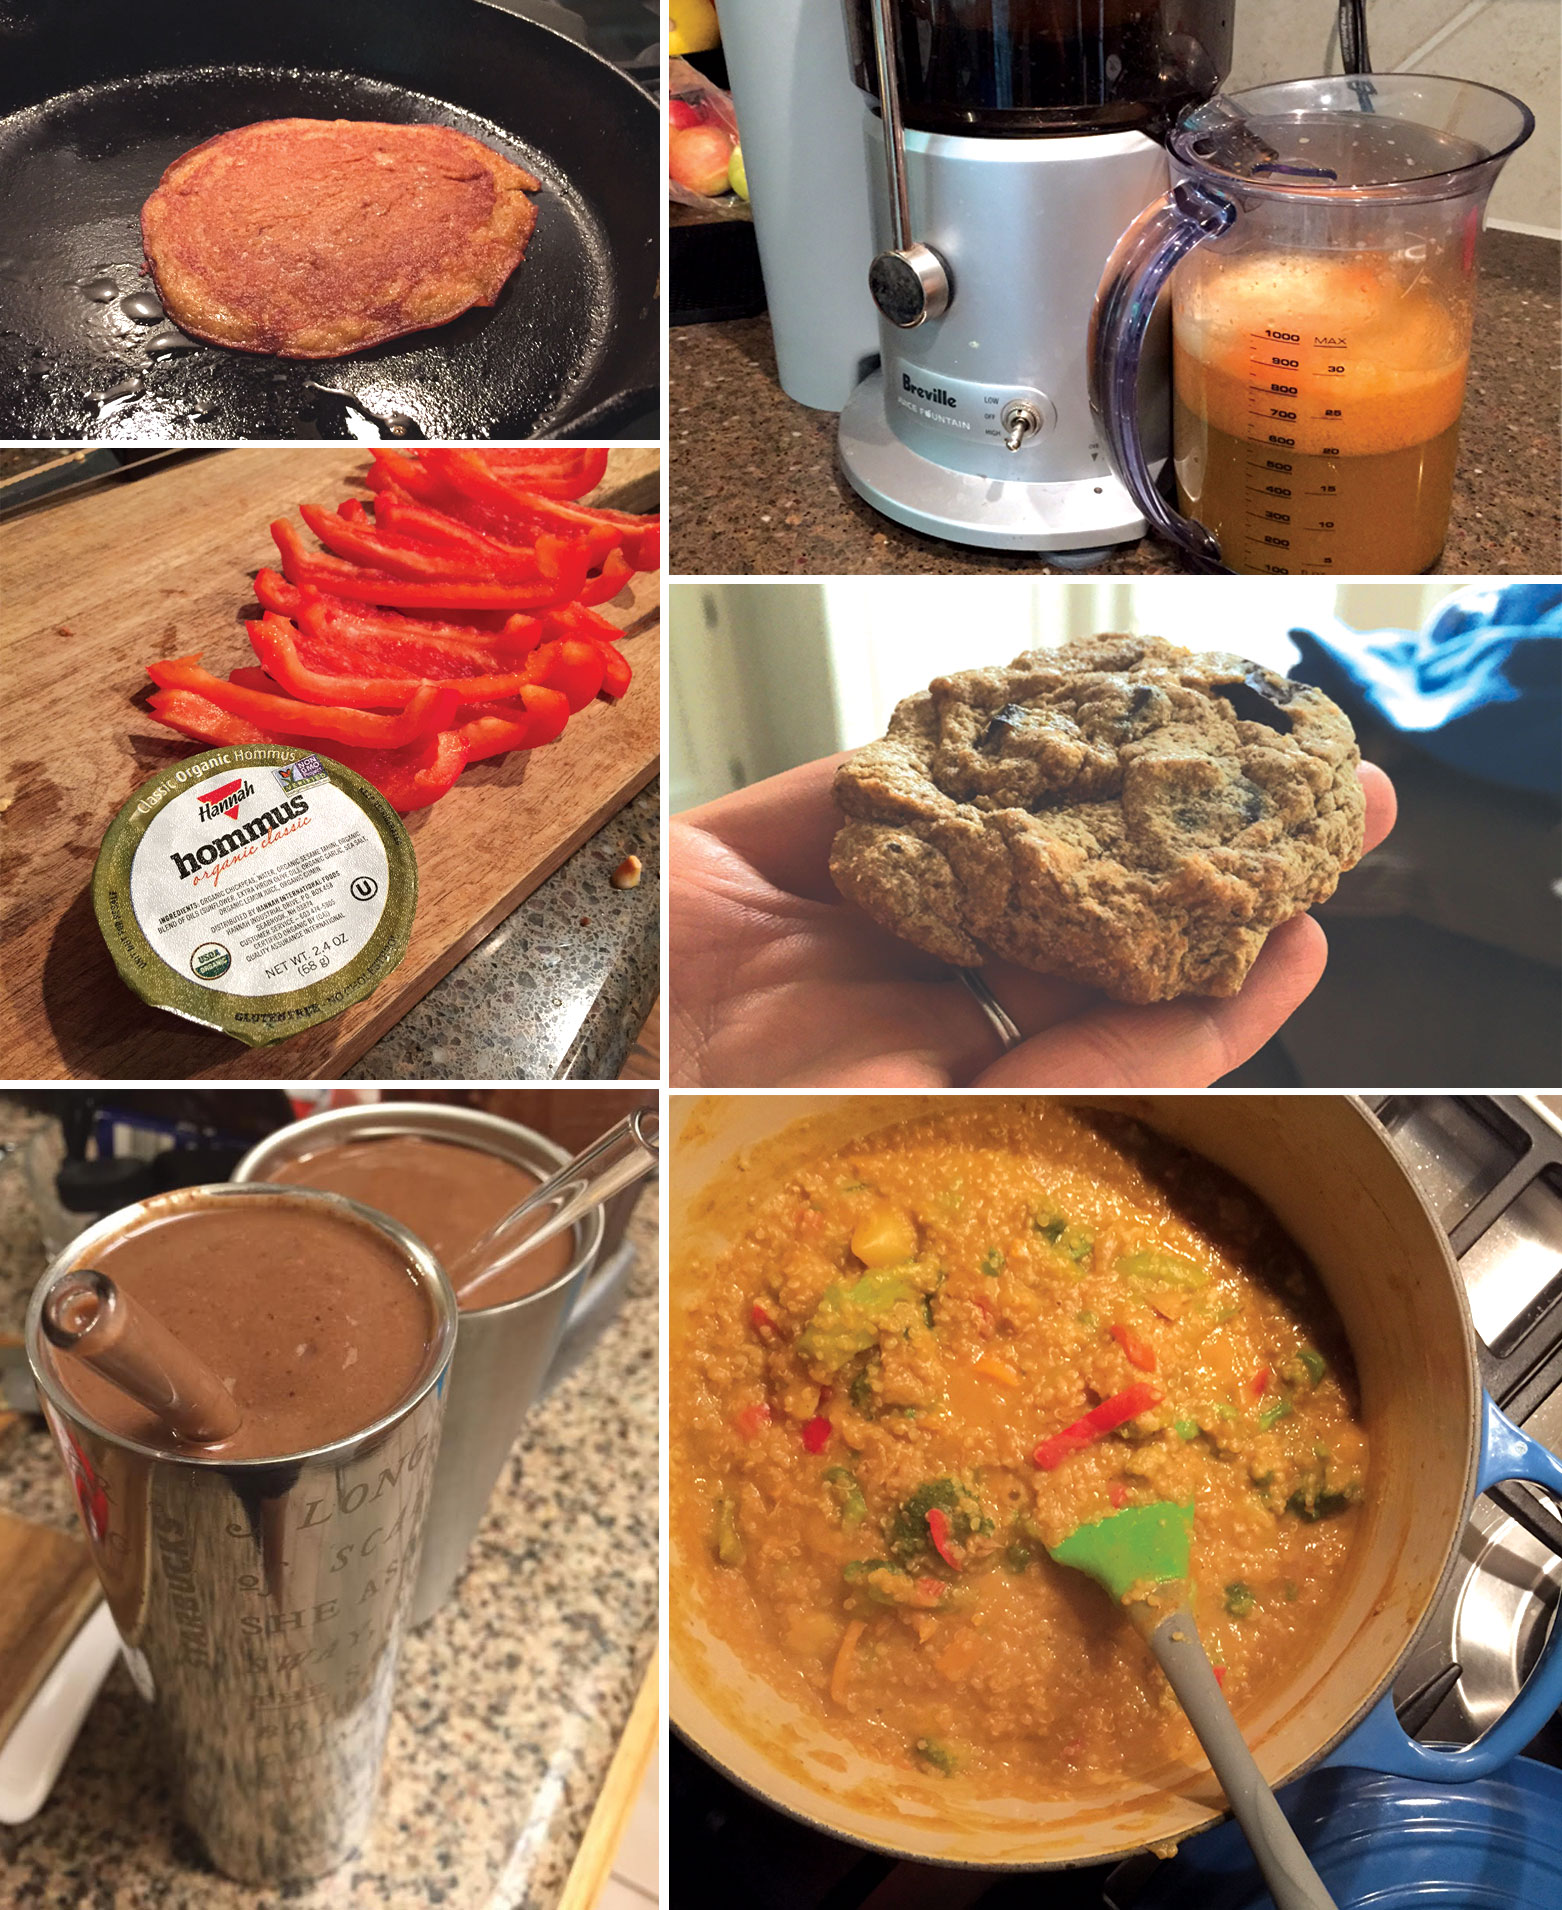 pumpkin pancakes, hummus with cut red pepper slices, cashew butter cookie, chocolate smoothie, and pumpkin curry in a pot